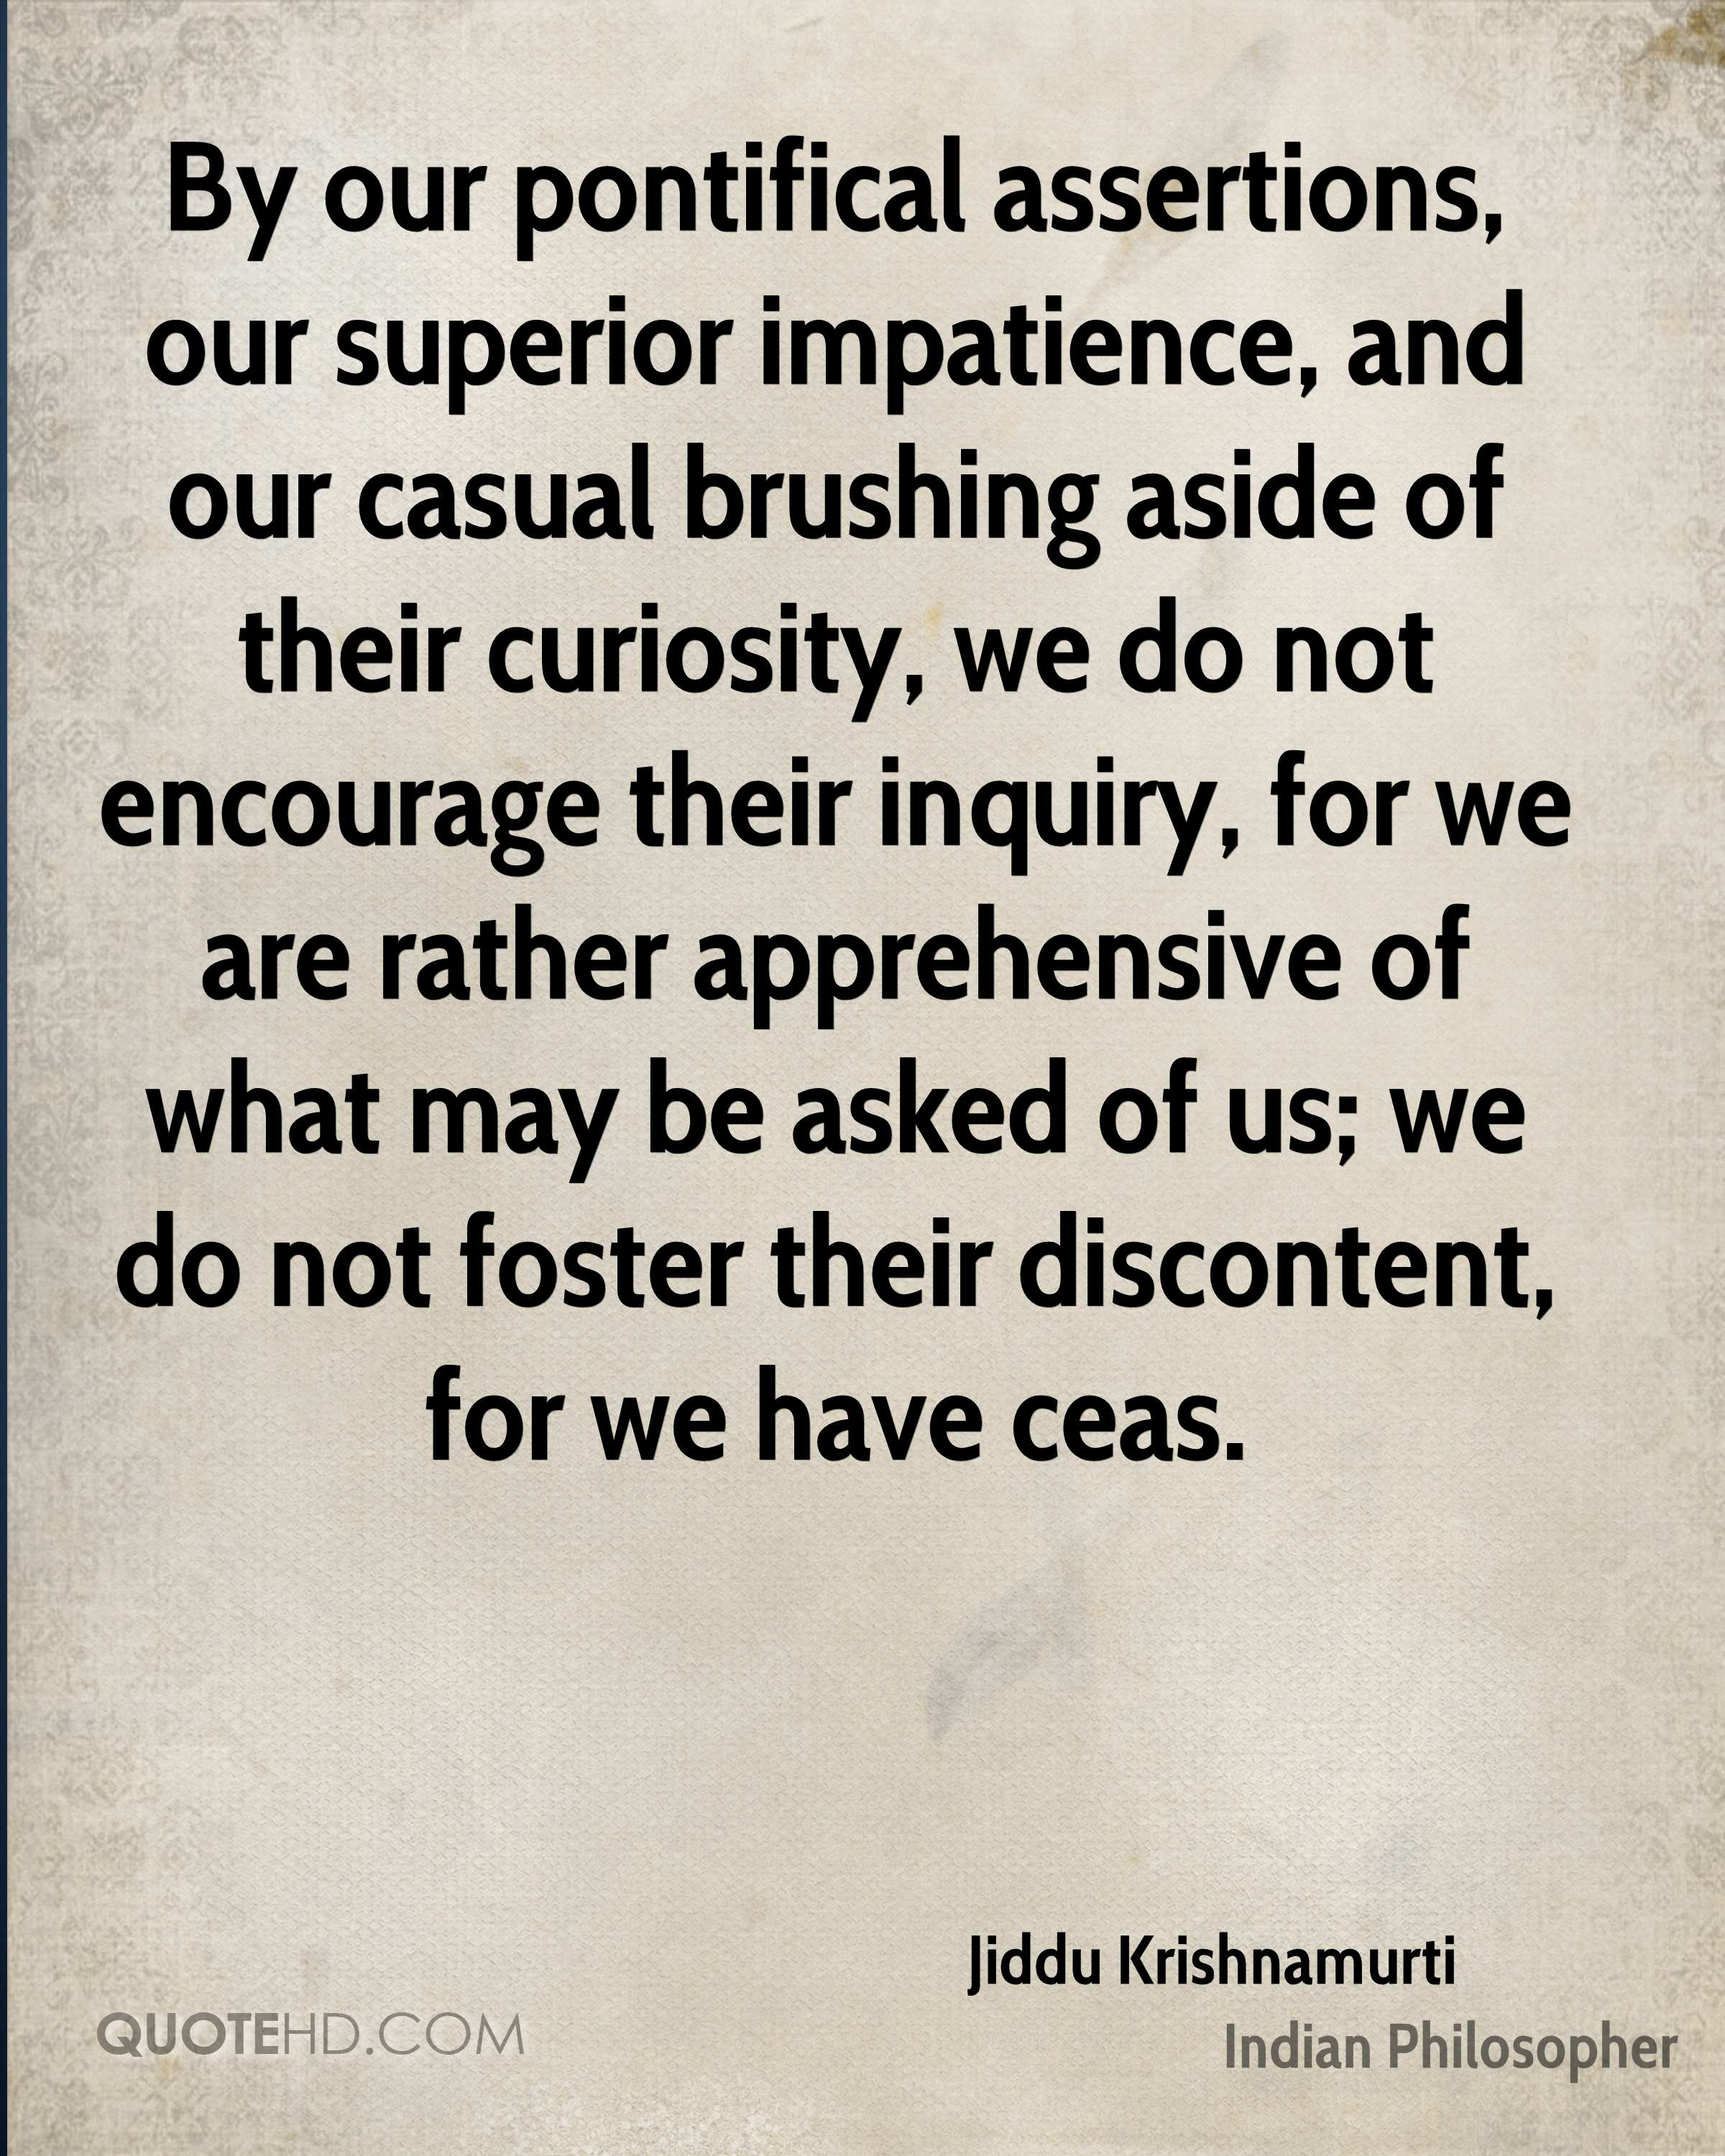 By our pontifical assertions, our superior impatience, and our casual brushing aside of their curiosity, we do not encourage their inquiry, for we are rather apprehensive of what may be asked of us; we do not foster their discontent, for we have ceas.